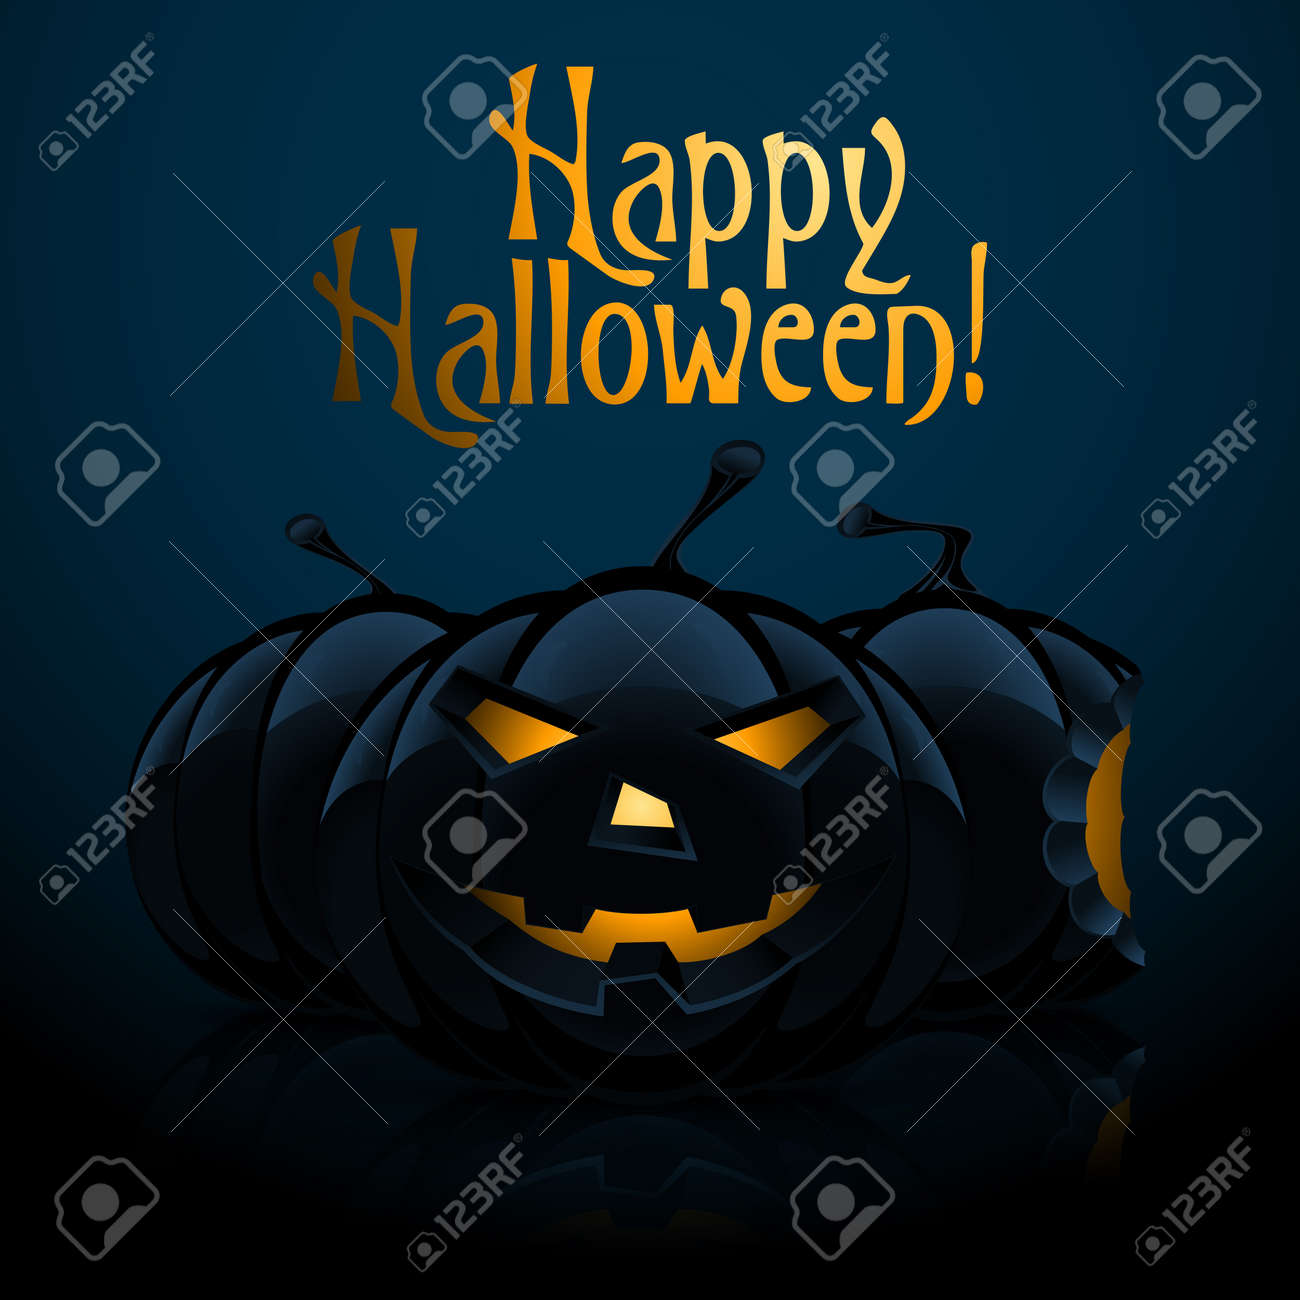 Halloween Background with Three Pumpkins on Dark Background Stock Vector - 20631759